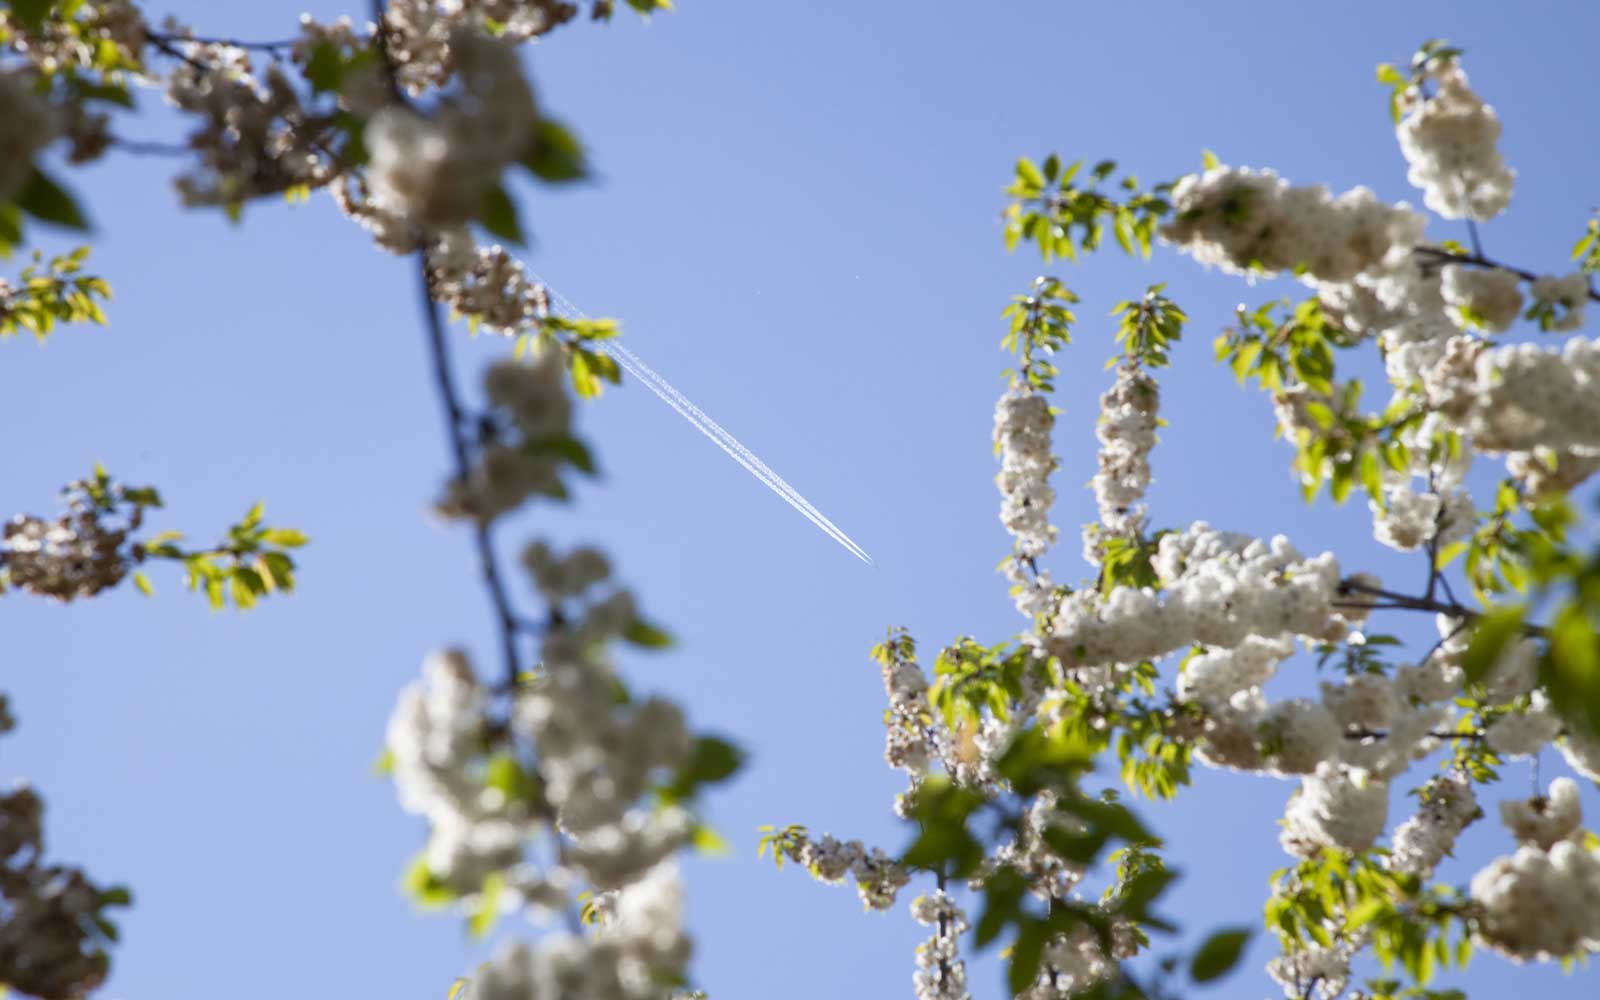 Blooming cherry tree in spring, Lower Saxony, Germany